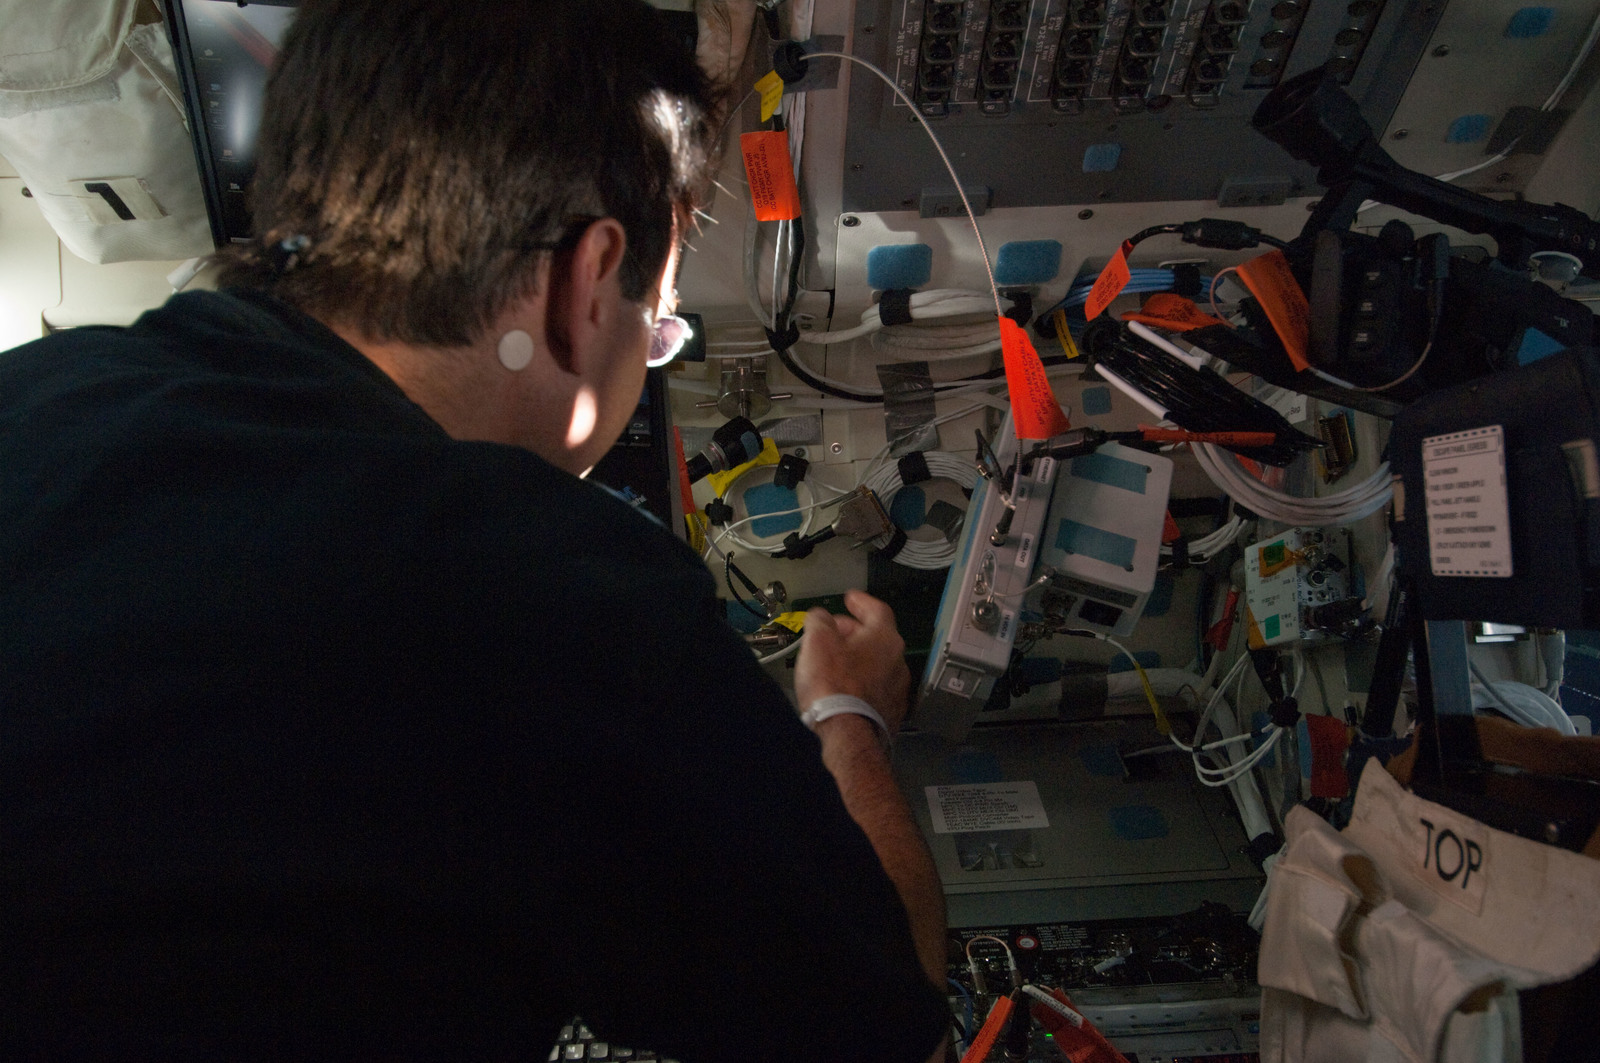 S134E005341 - STS-134 - View of STS-134 MS Chamitoff working on the Flight Deck